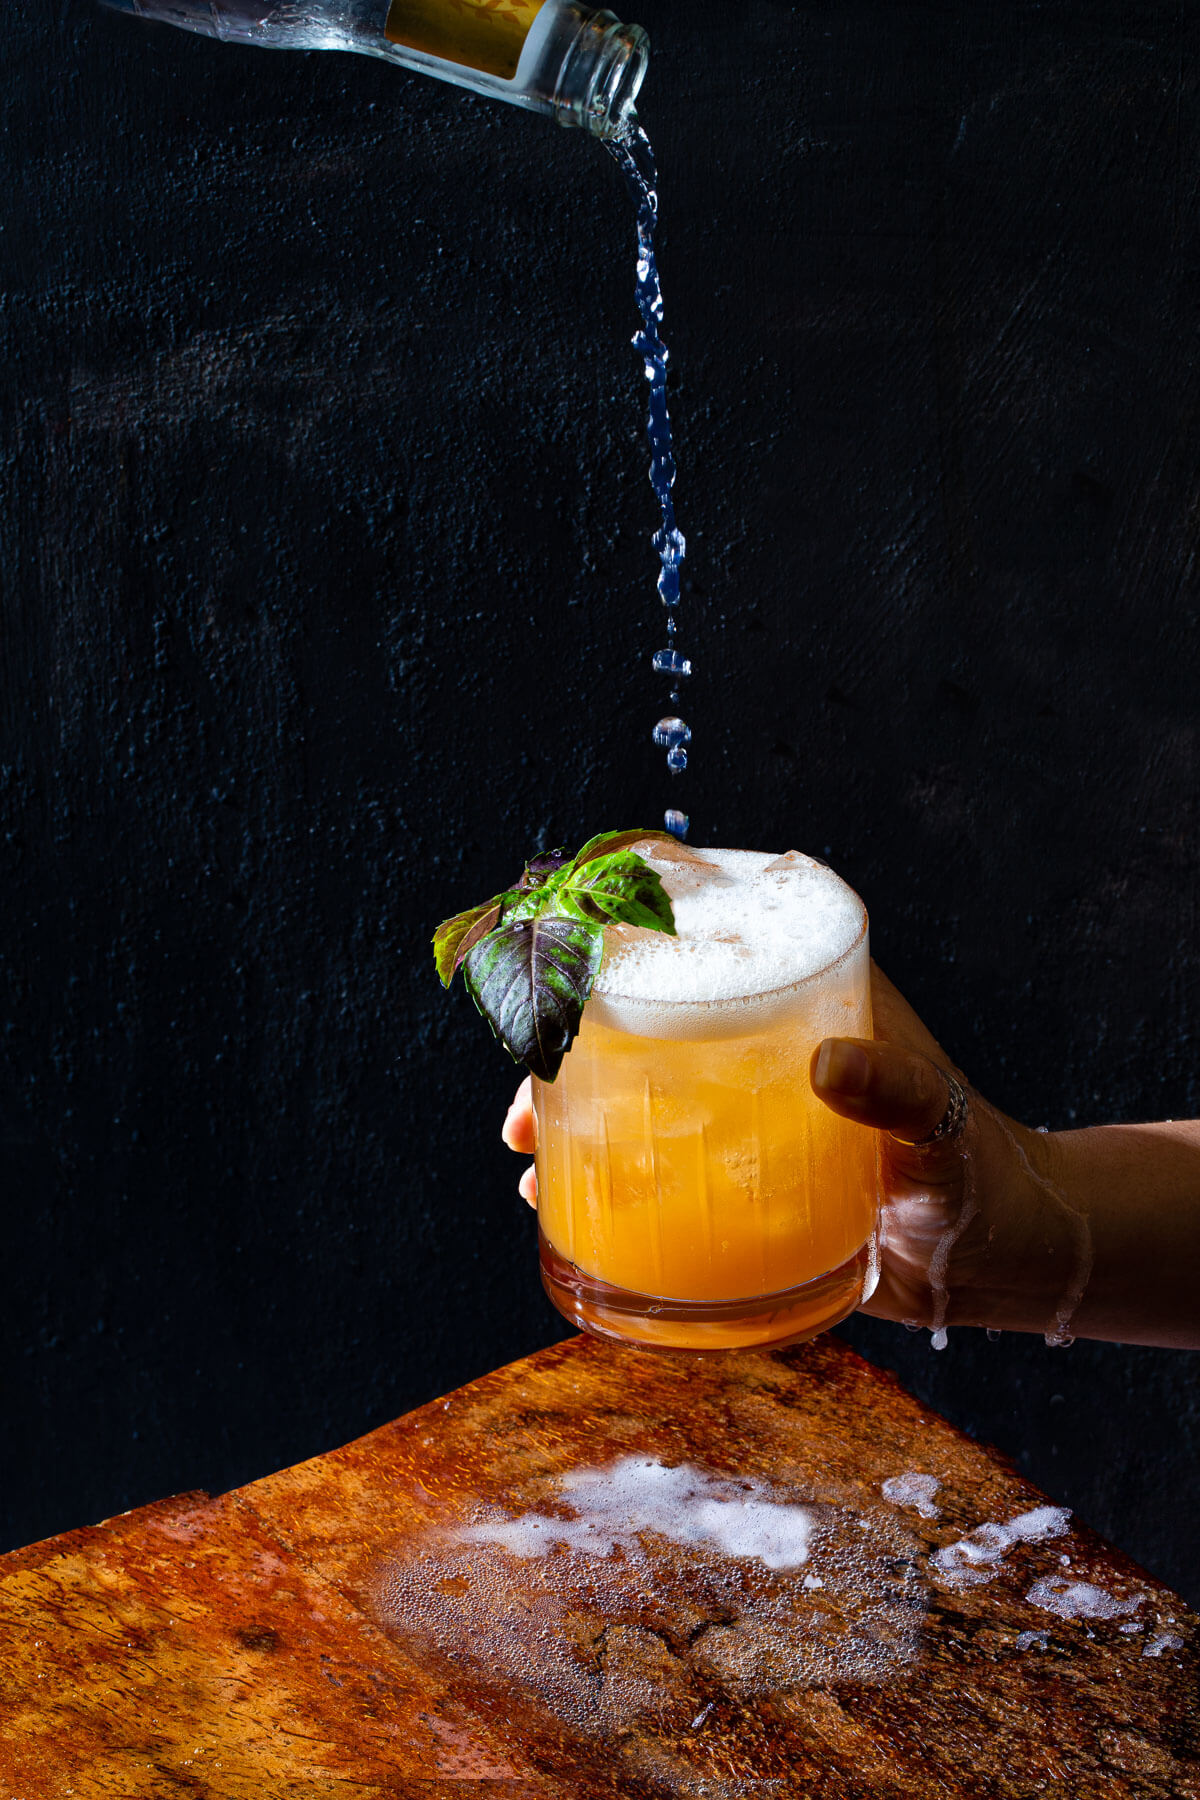 A hand holding a glass filled with a peach-basil gin shrub cocktail while tonic water is poured into.